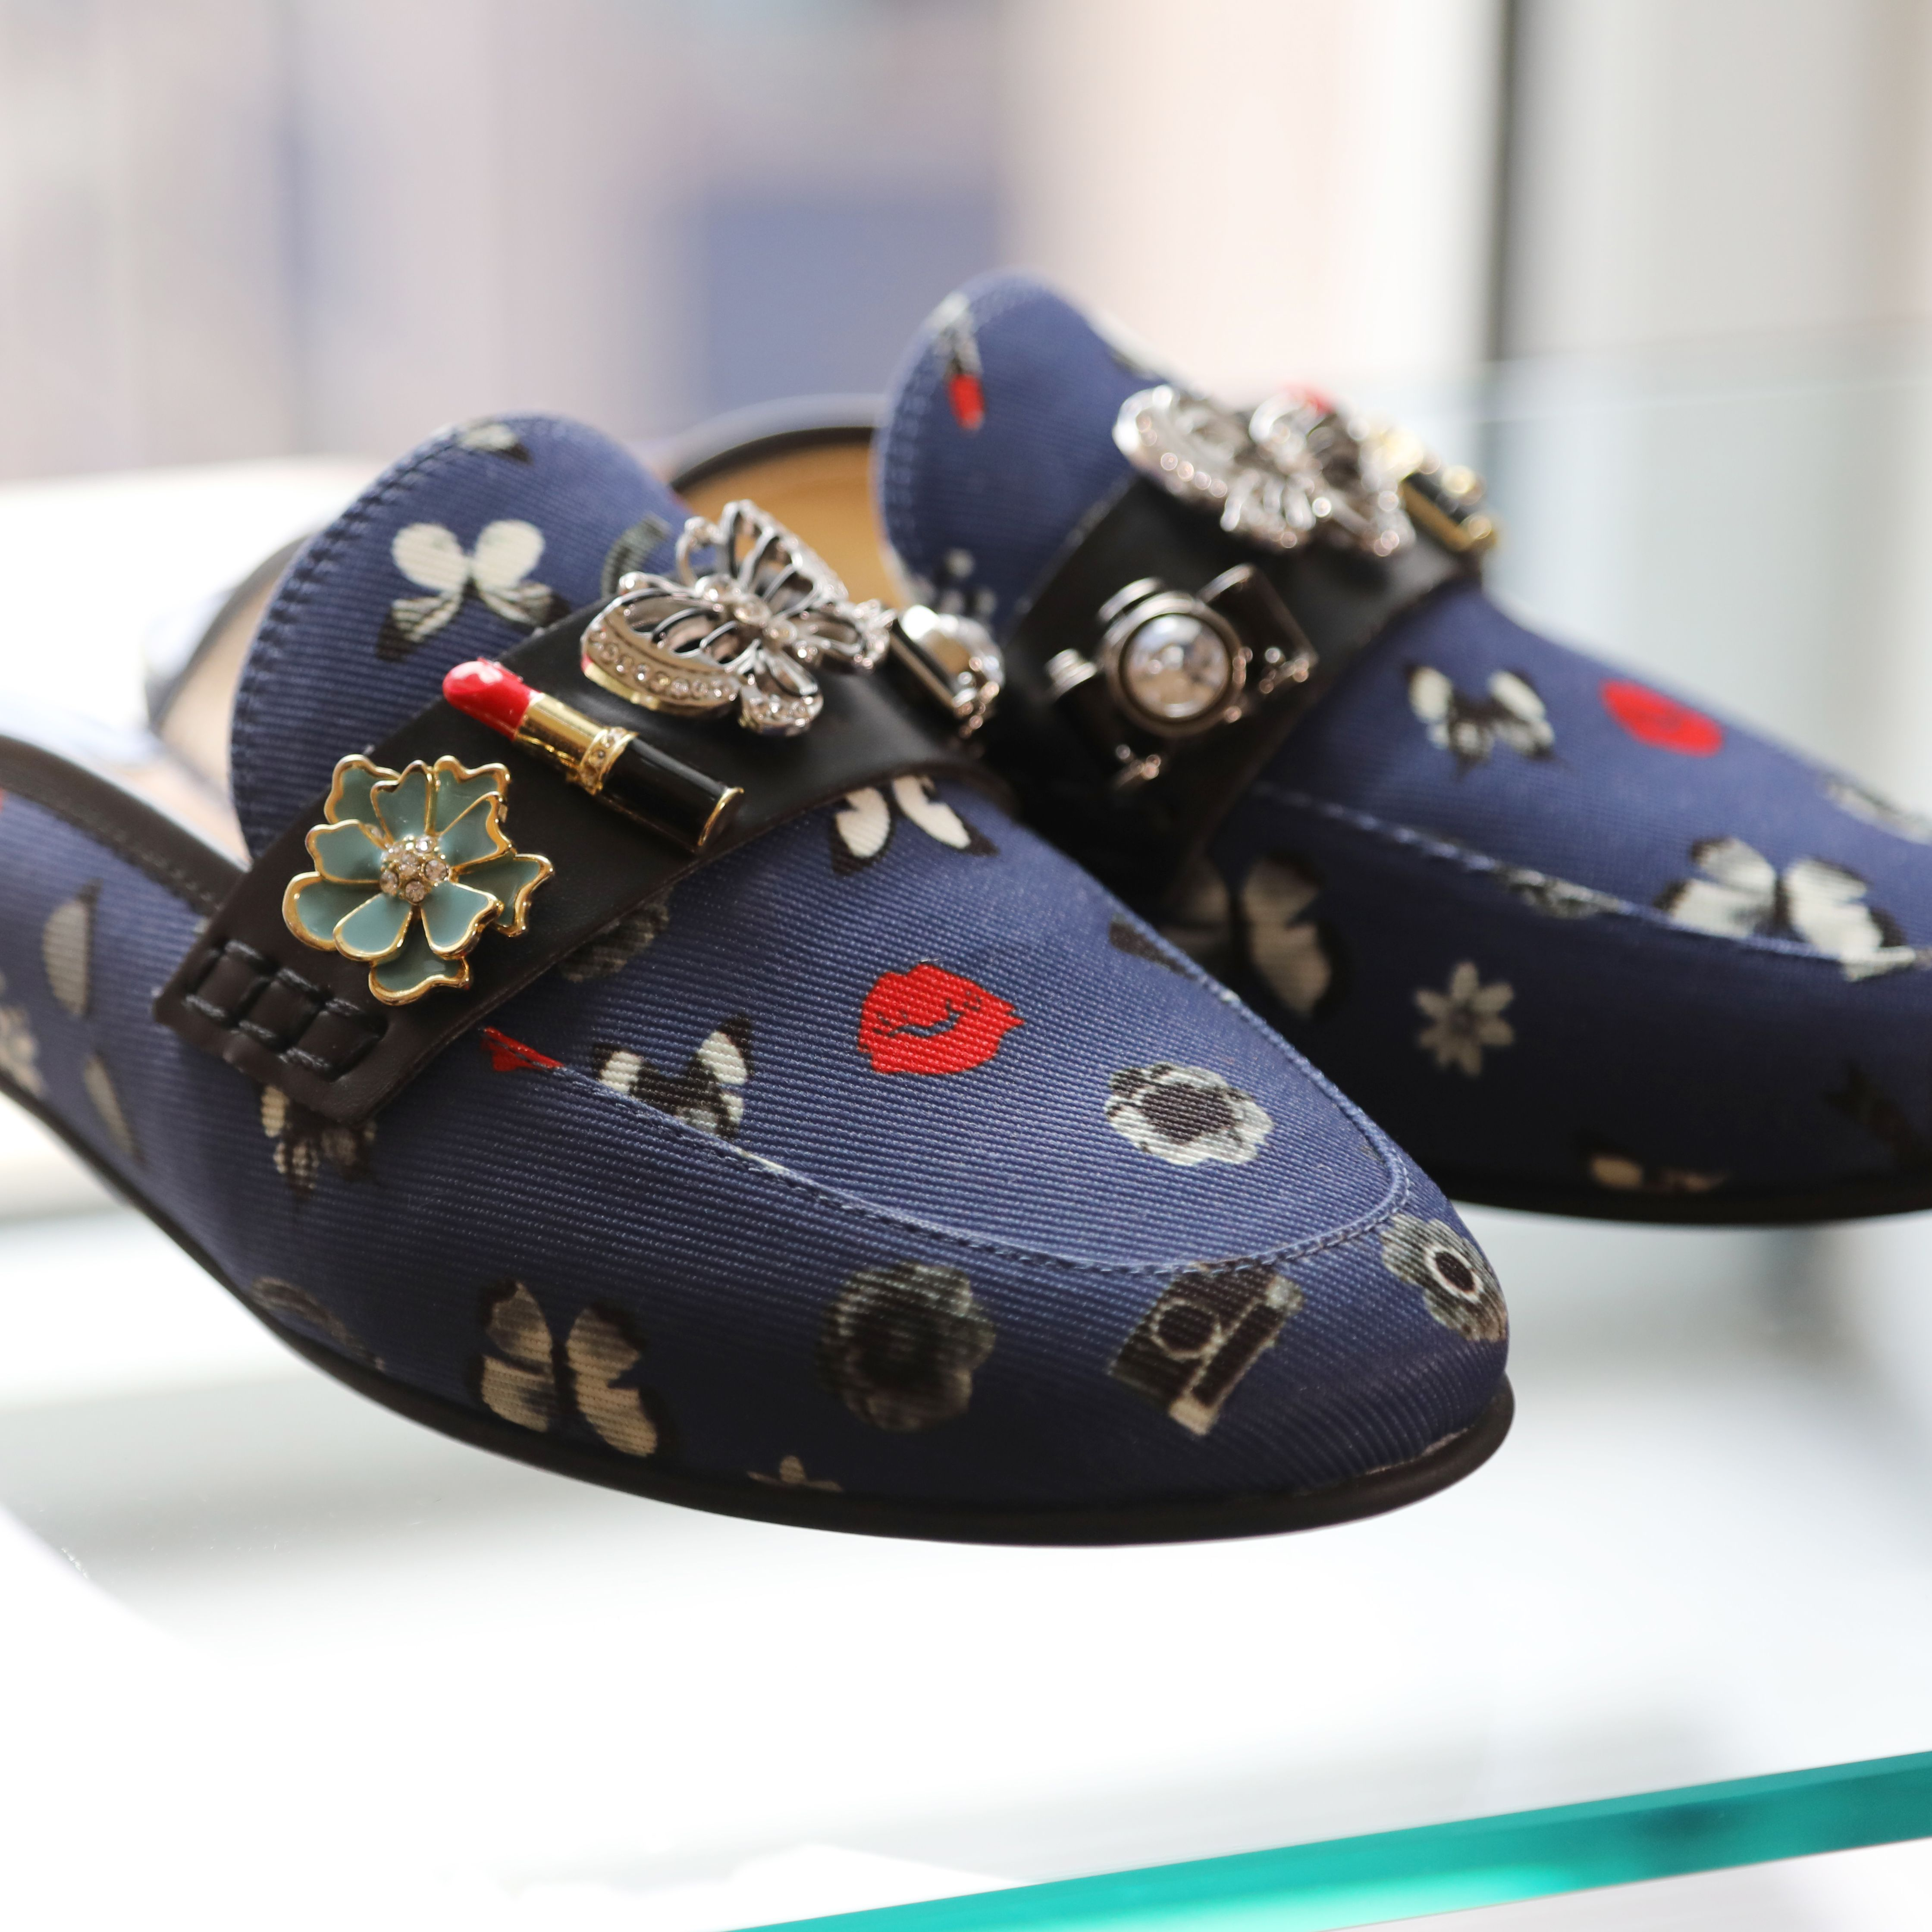 Pin on Shoes we love!!!